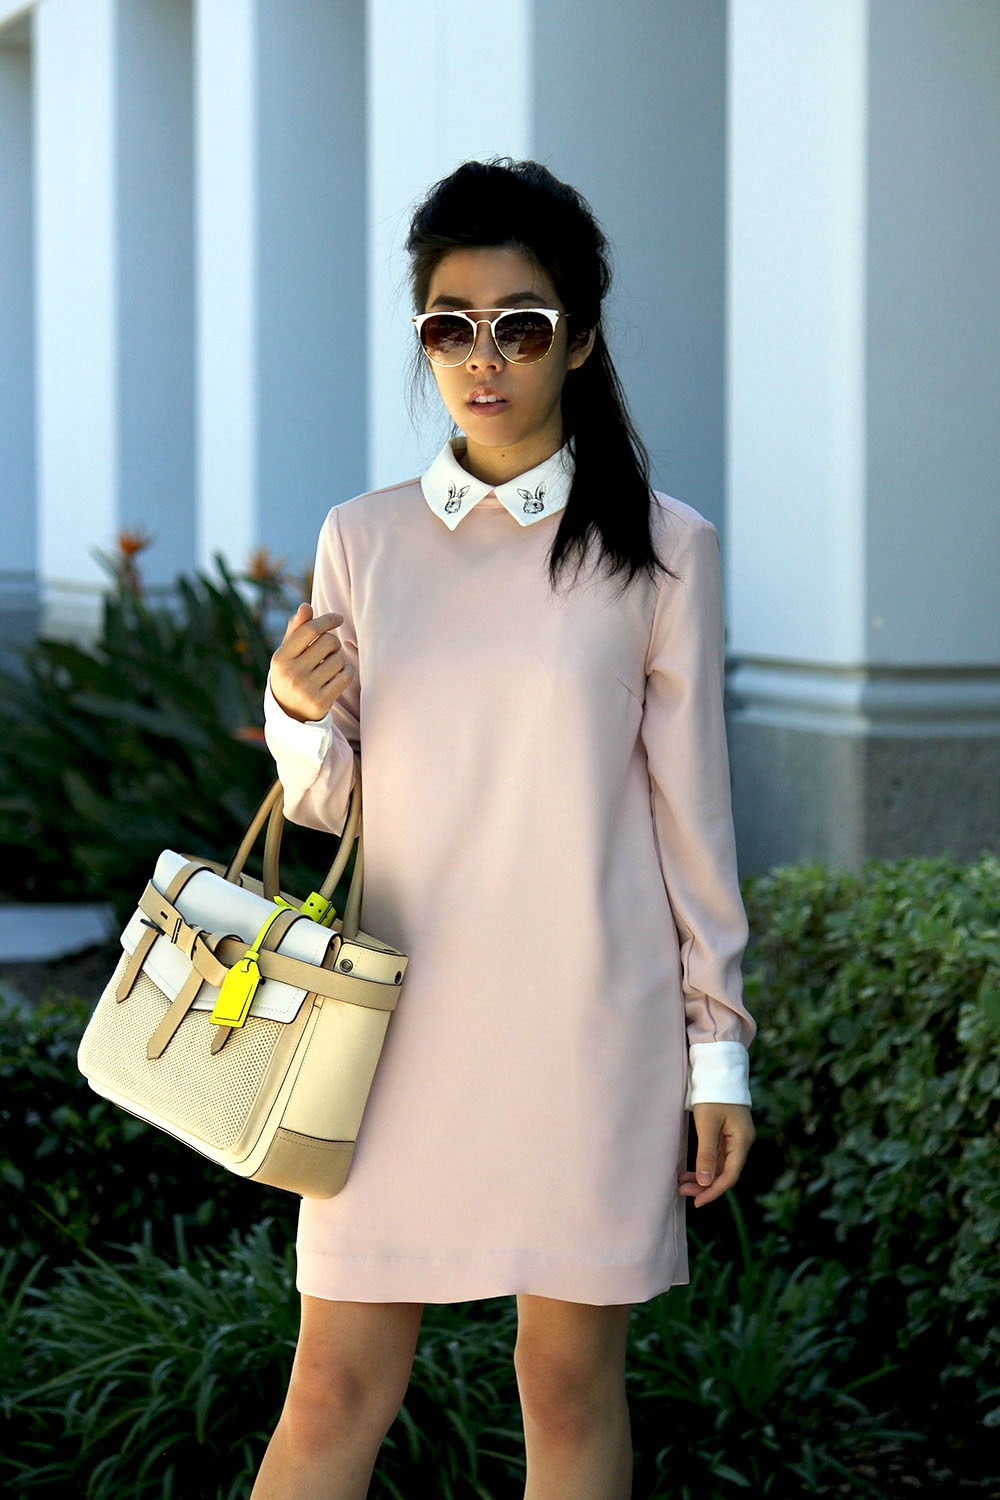 Adrienne Nguyen_Invictus_Pink Collar Dress_Research Student_What to wear into a Research Job_How to Look Fashionable at Work